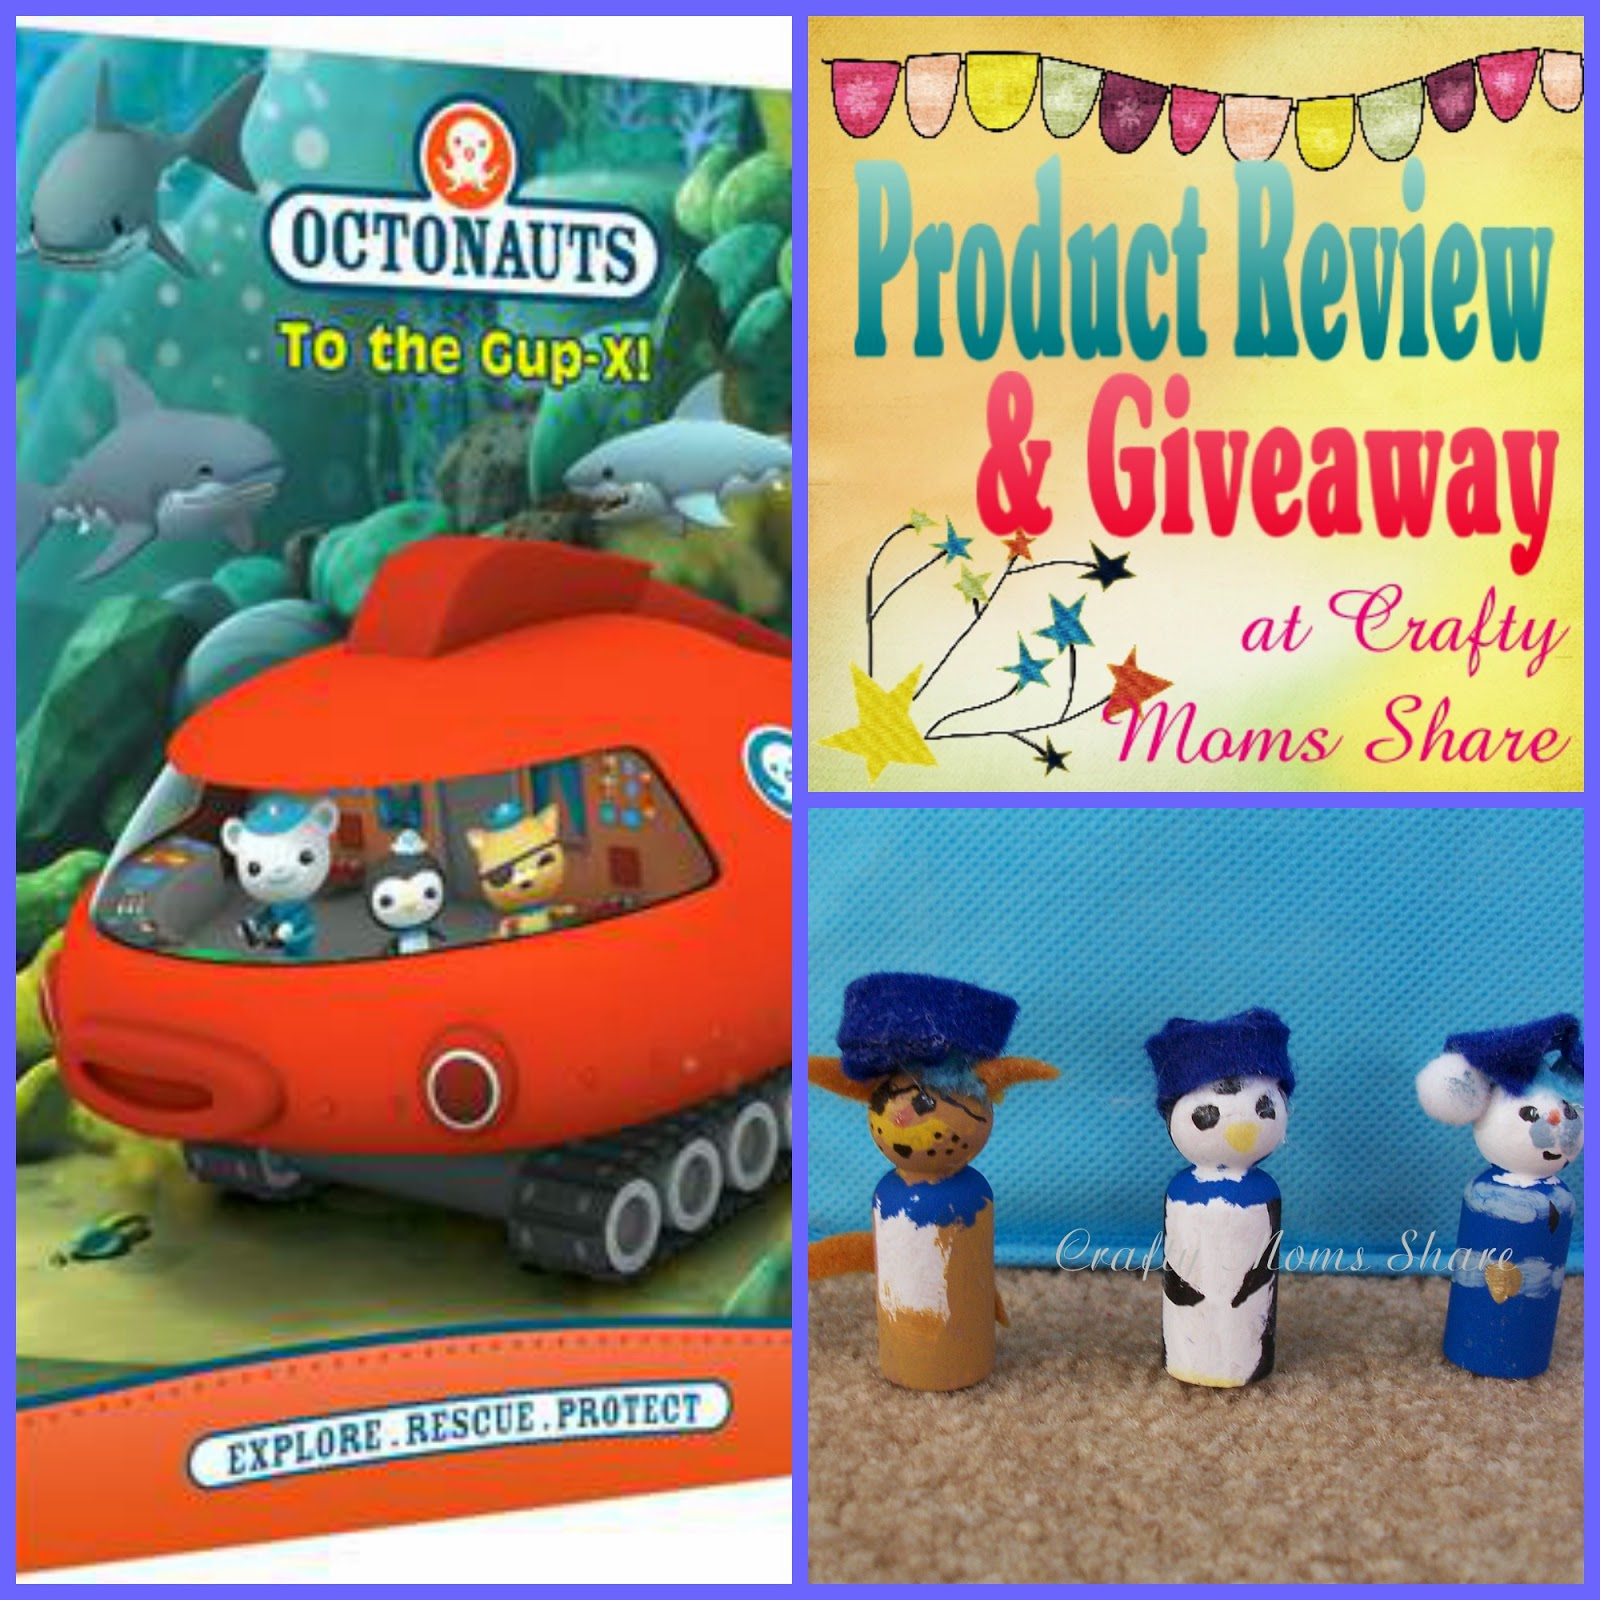 http://craftymomsshare.blogspot.com/2014/03/octonauts-to-gup-x-dvd-review-and.html